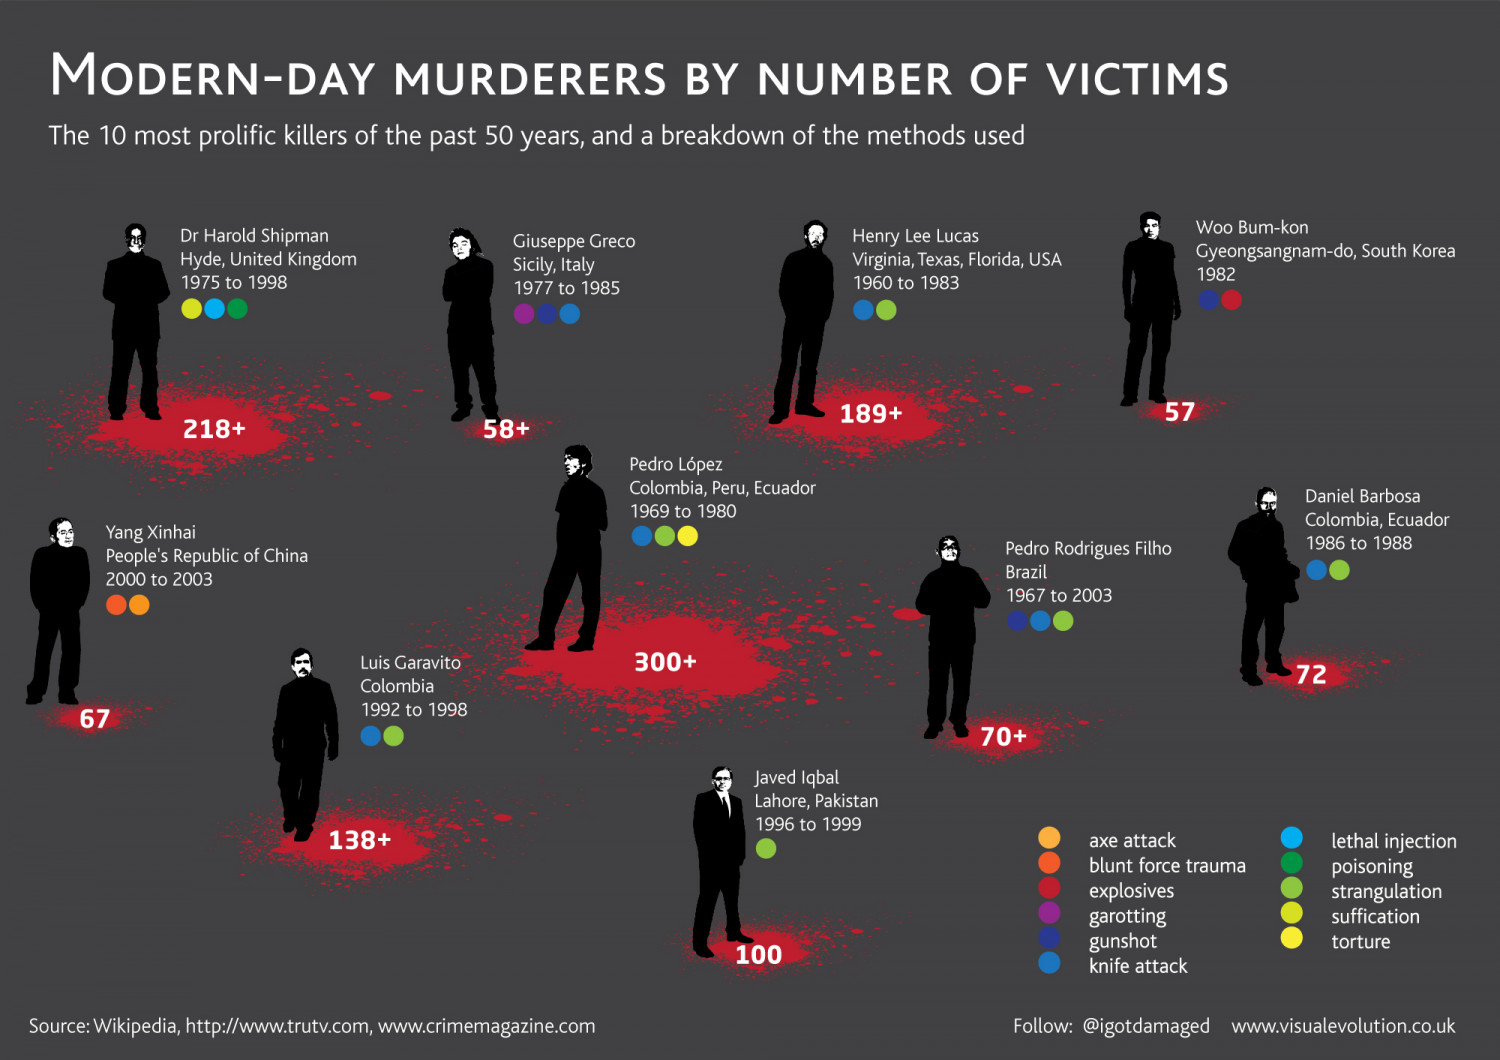 Modern-day murderers by number of victims Infographic